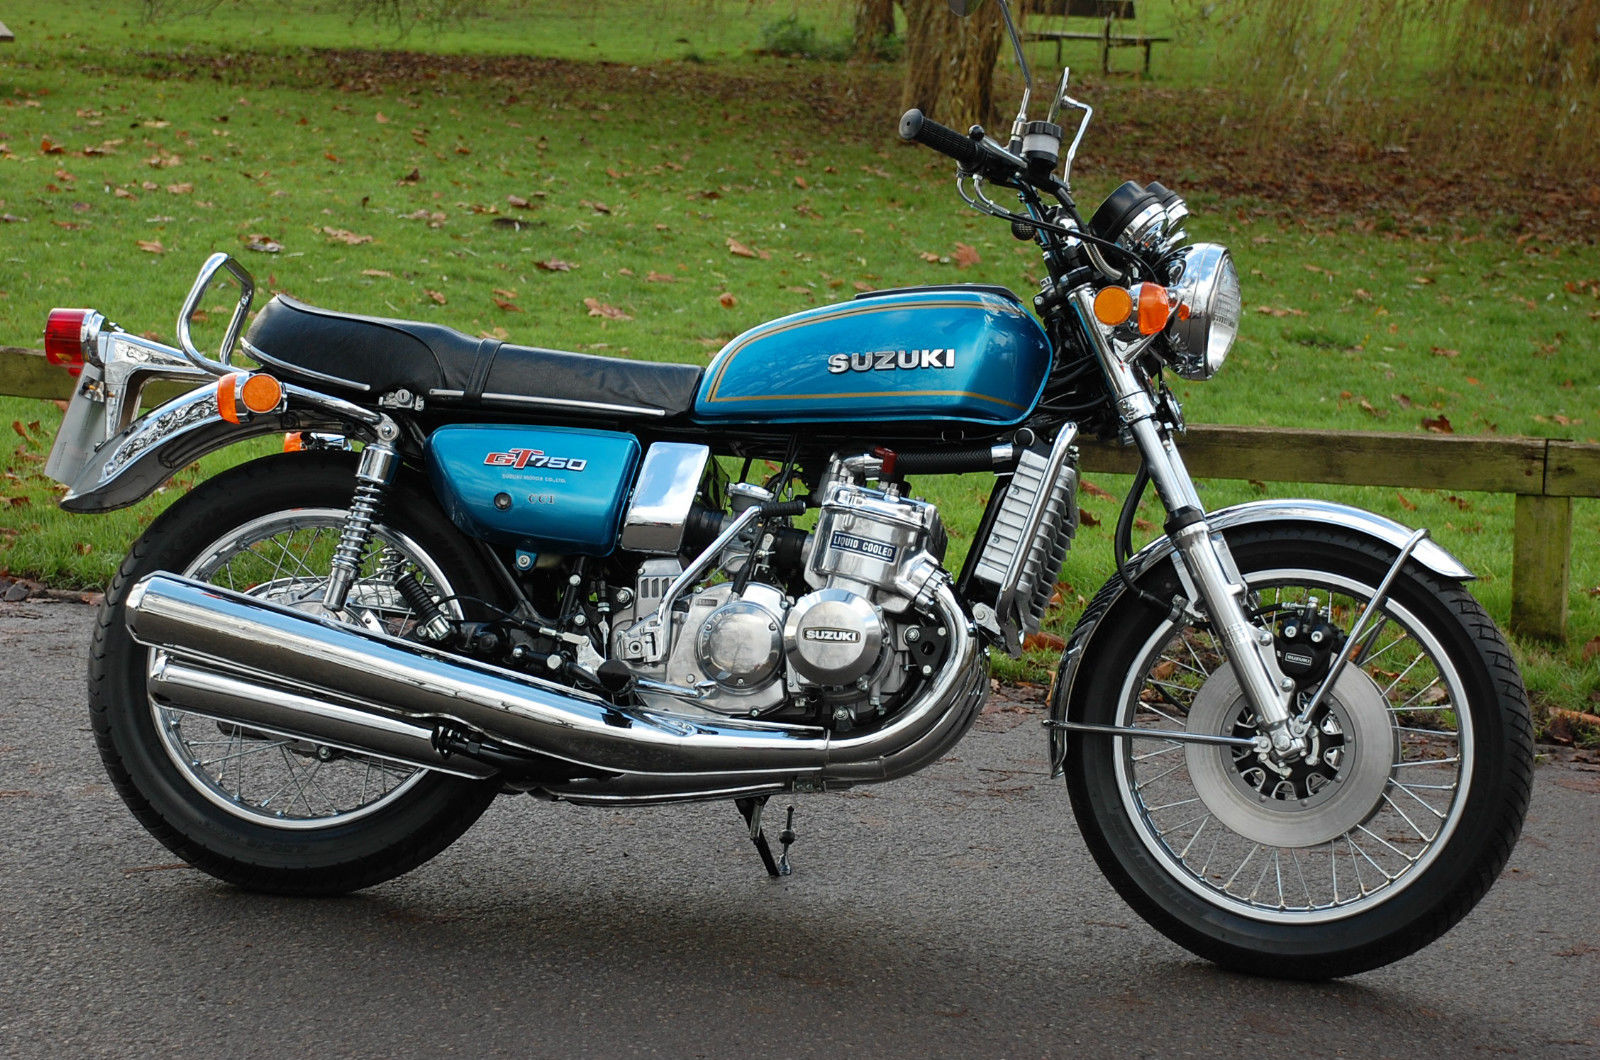 Suzuki GT750 - 1975 - Kettle, Water Buffalo, Engine Points Cover, Radiator and Exhaust.